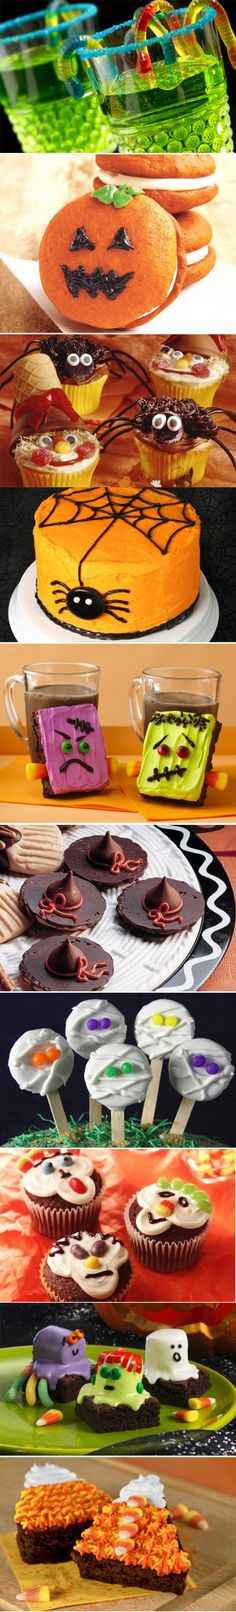 I like the top image, with the green drink! Tons of Halloween Treats!